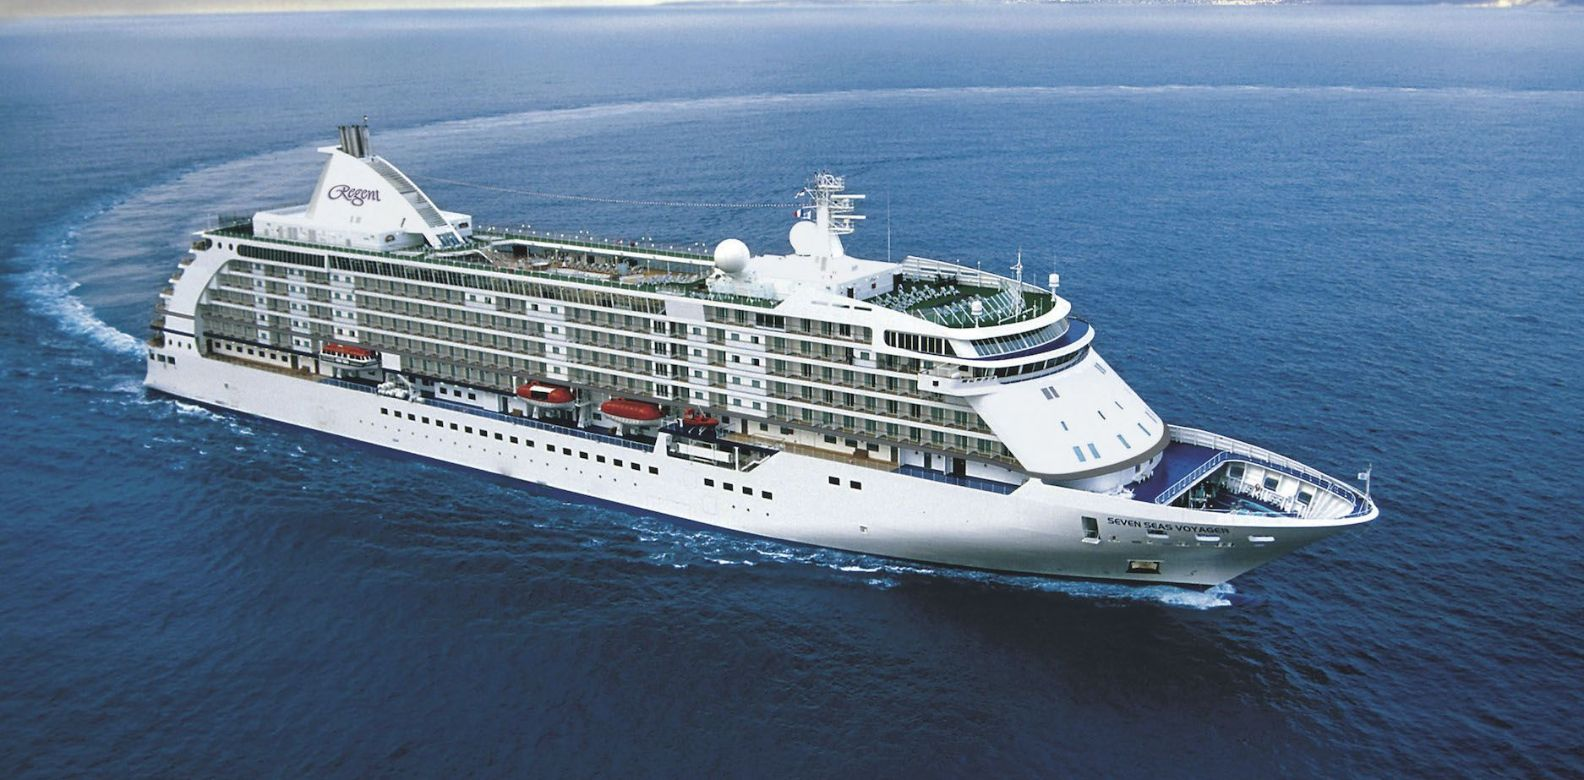 Regent Seven Seas Cruises: Unlimited Luxury At Sea